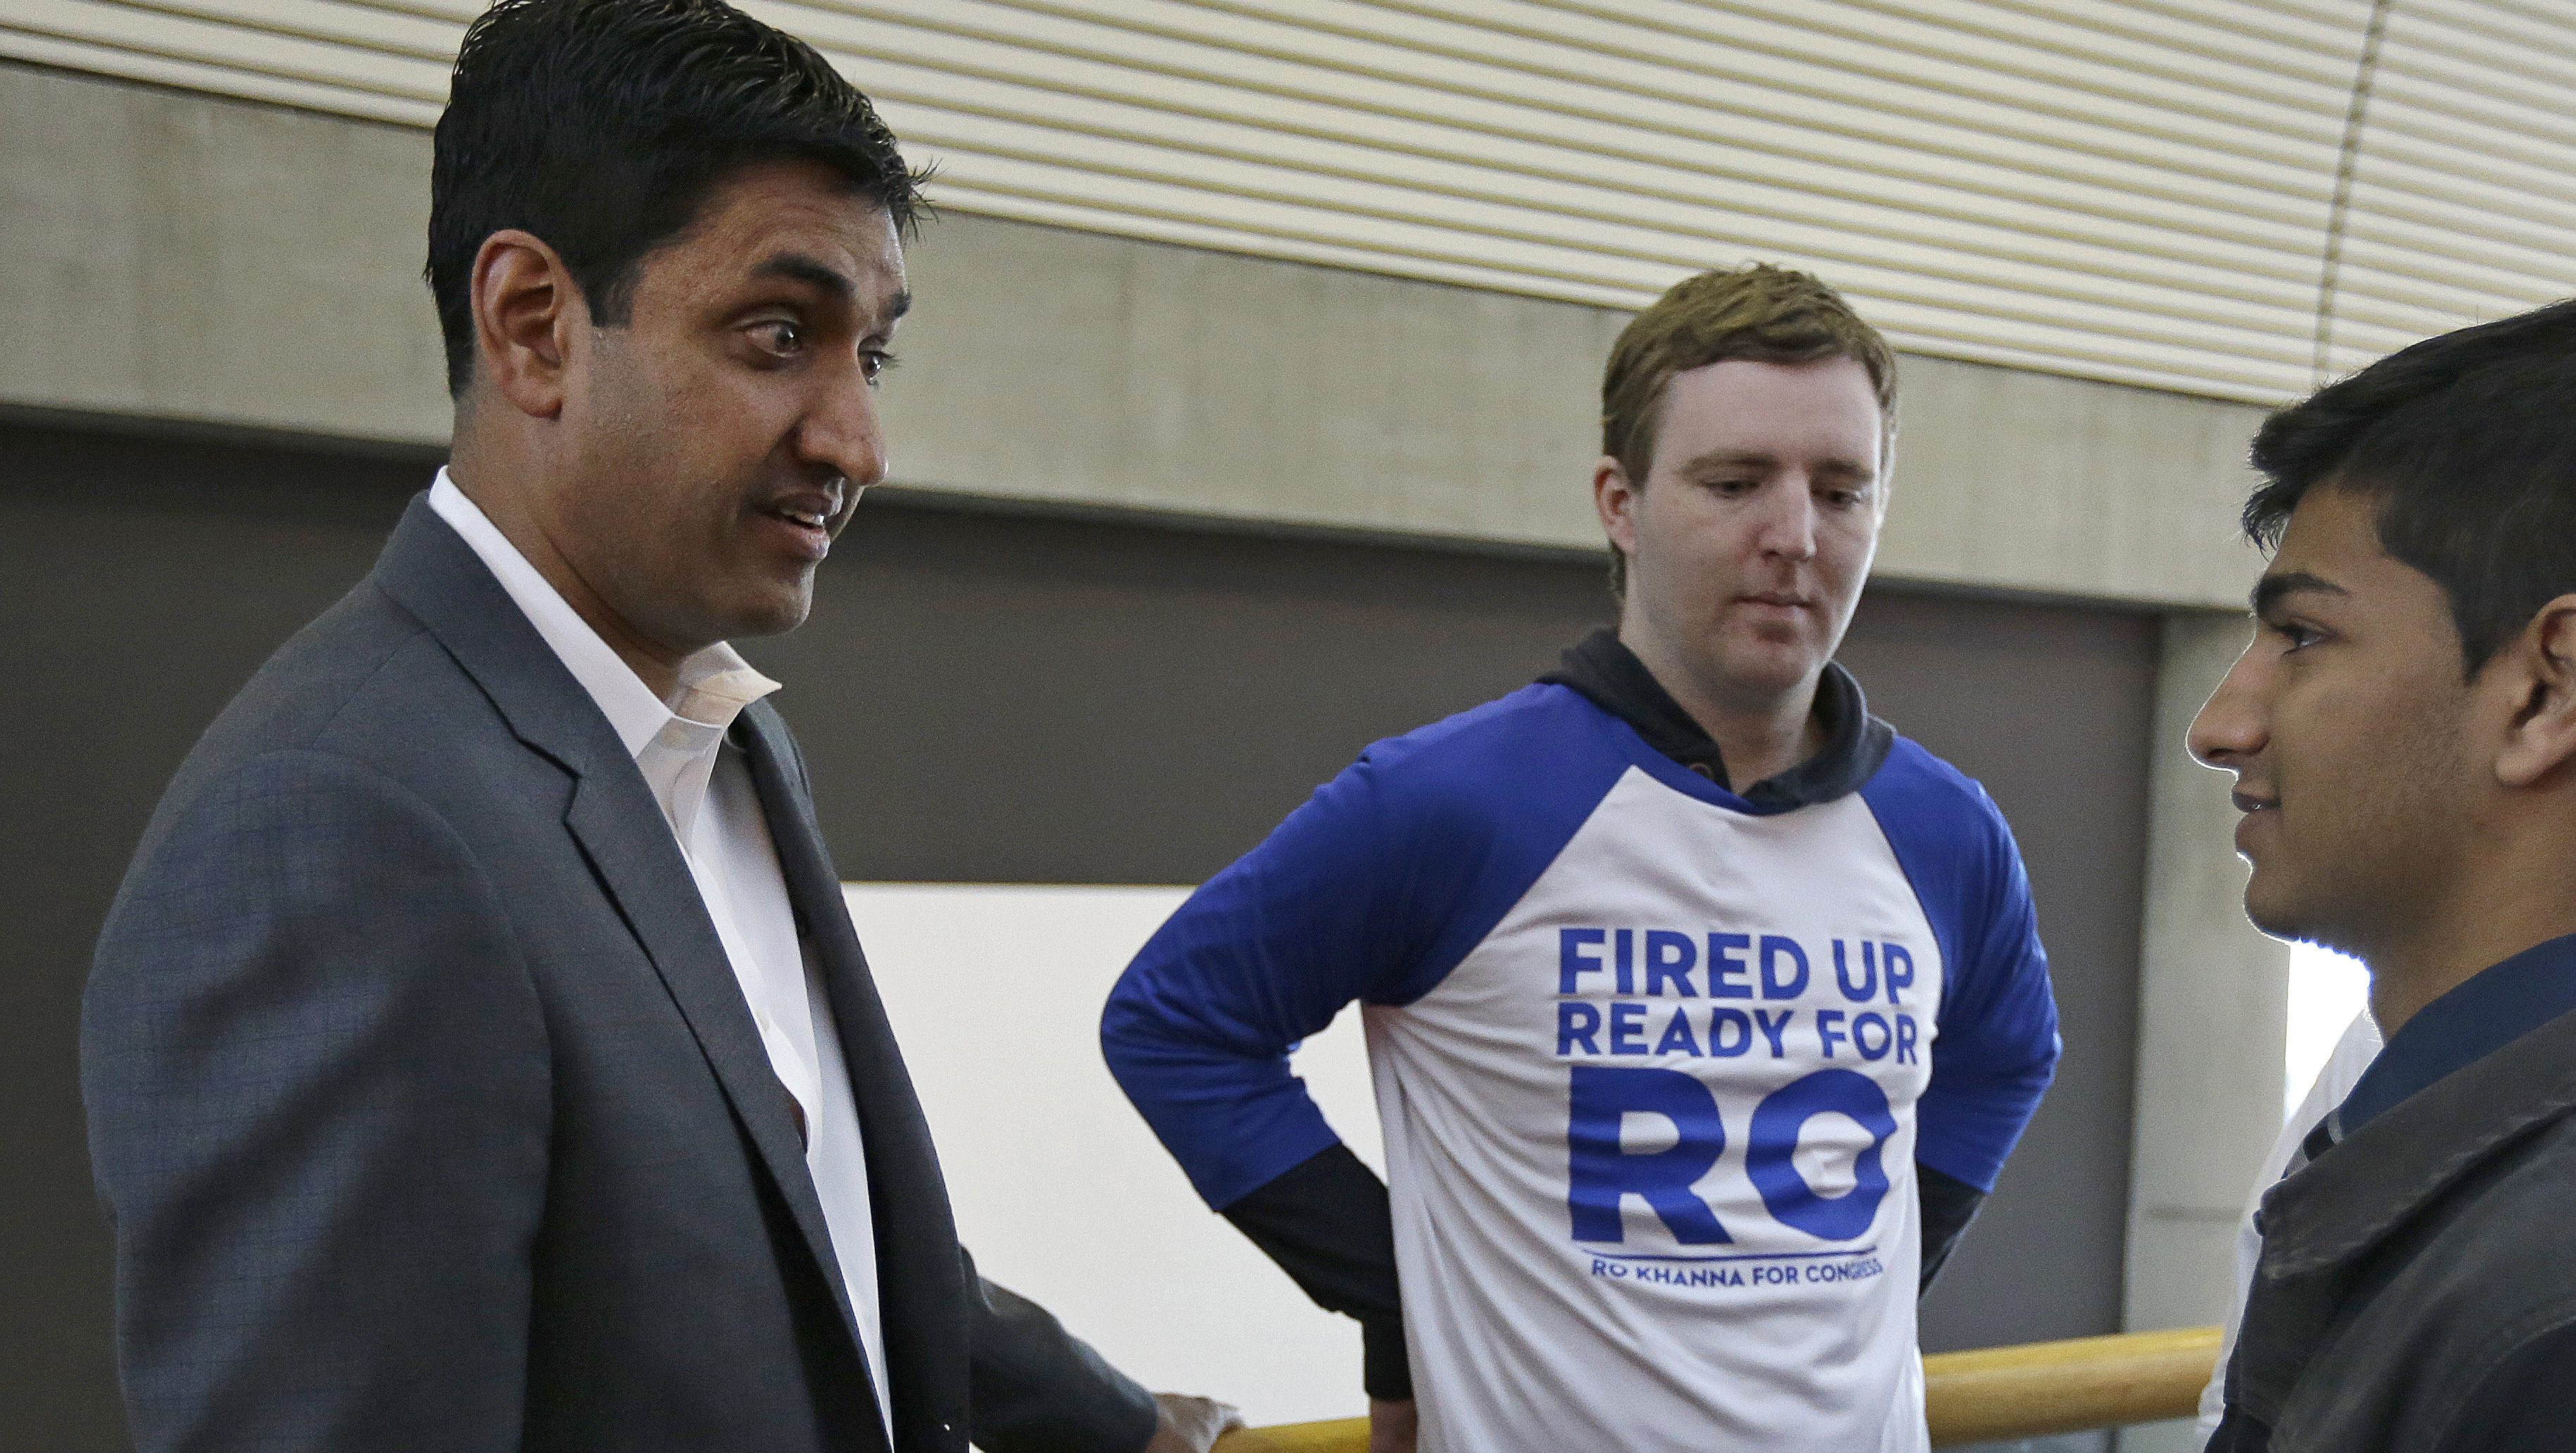 Ro Khanna, left, Democratic candidate for U.S. Representative from California's 17th District, speaks with supporters during a break in the California Democrats State Convention Saturday, Feb. 27, 2016, in San Jose, Calif. (AP Photo/)